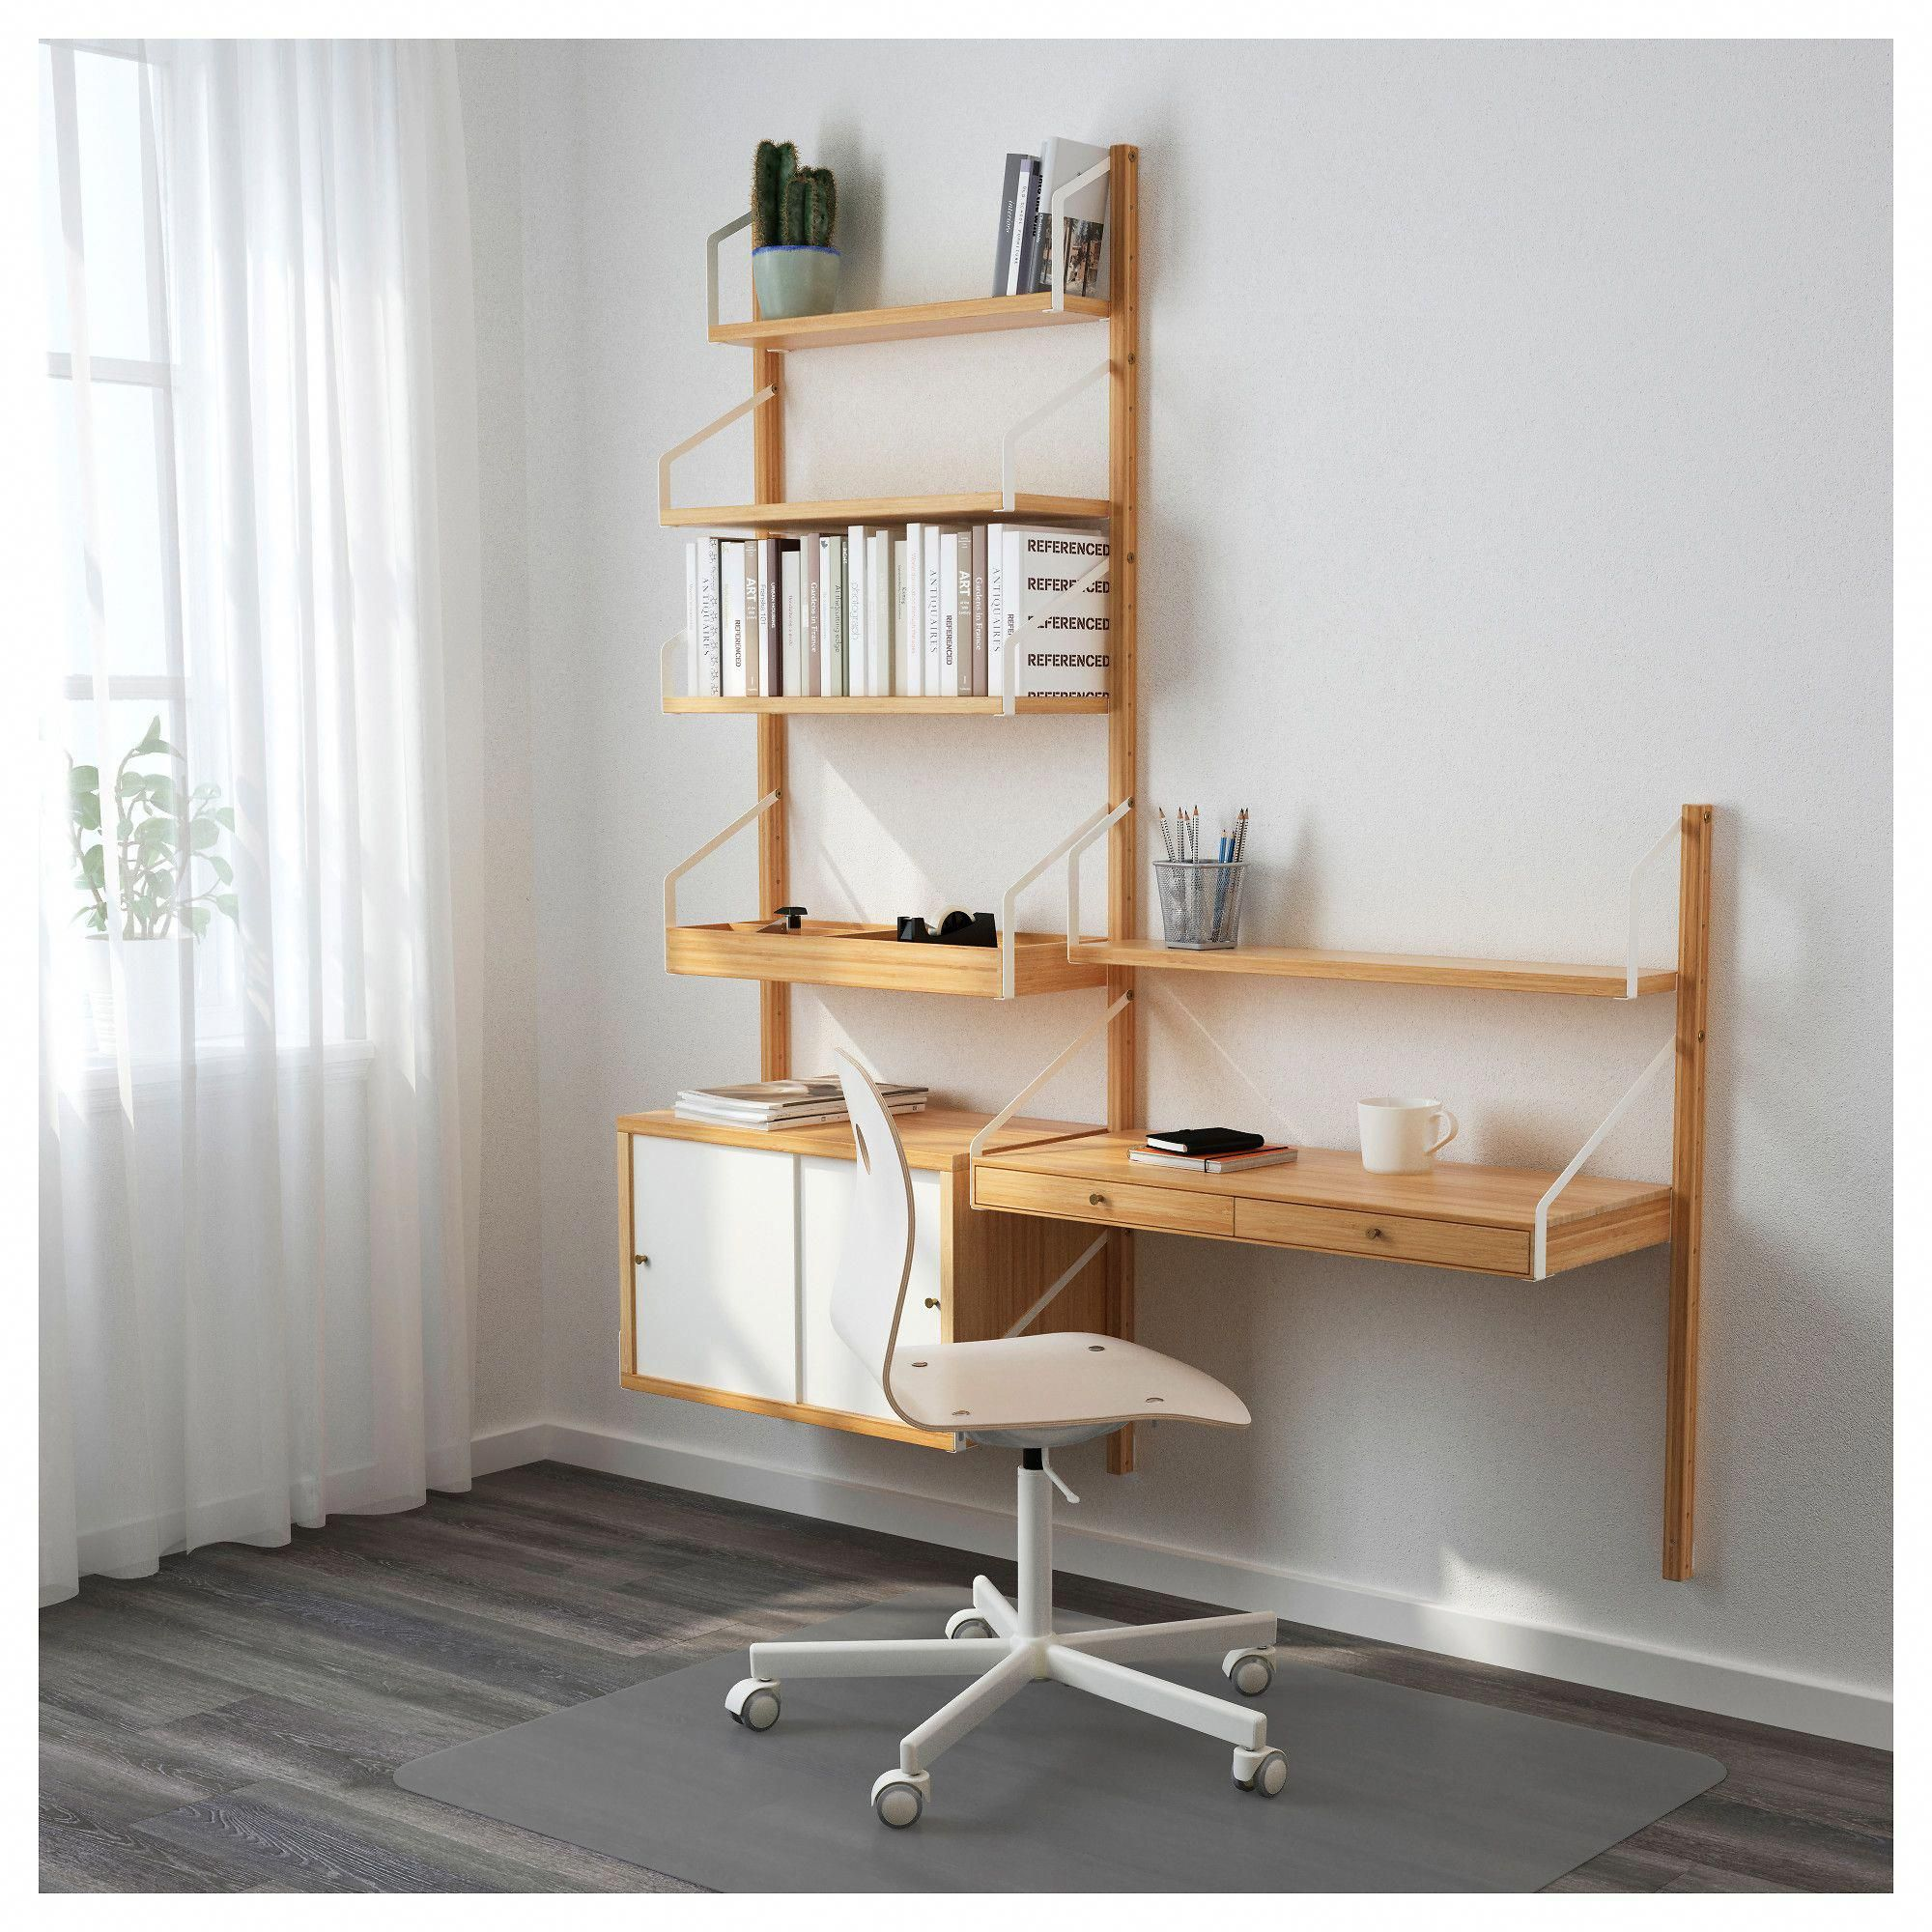 svaln s wall mounted storage combination bamboo white in 2018 rh pinterest com